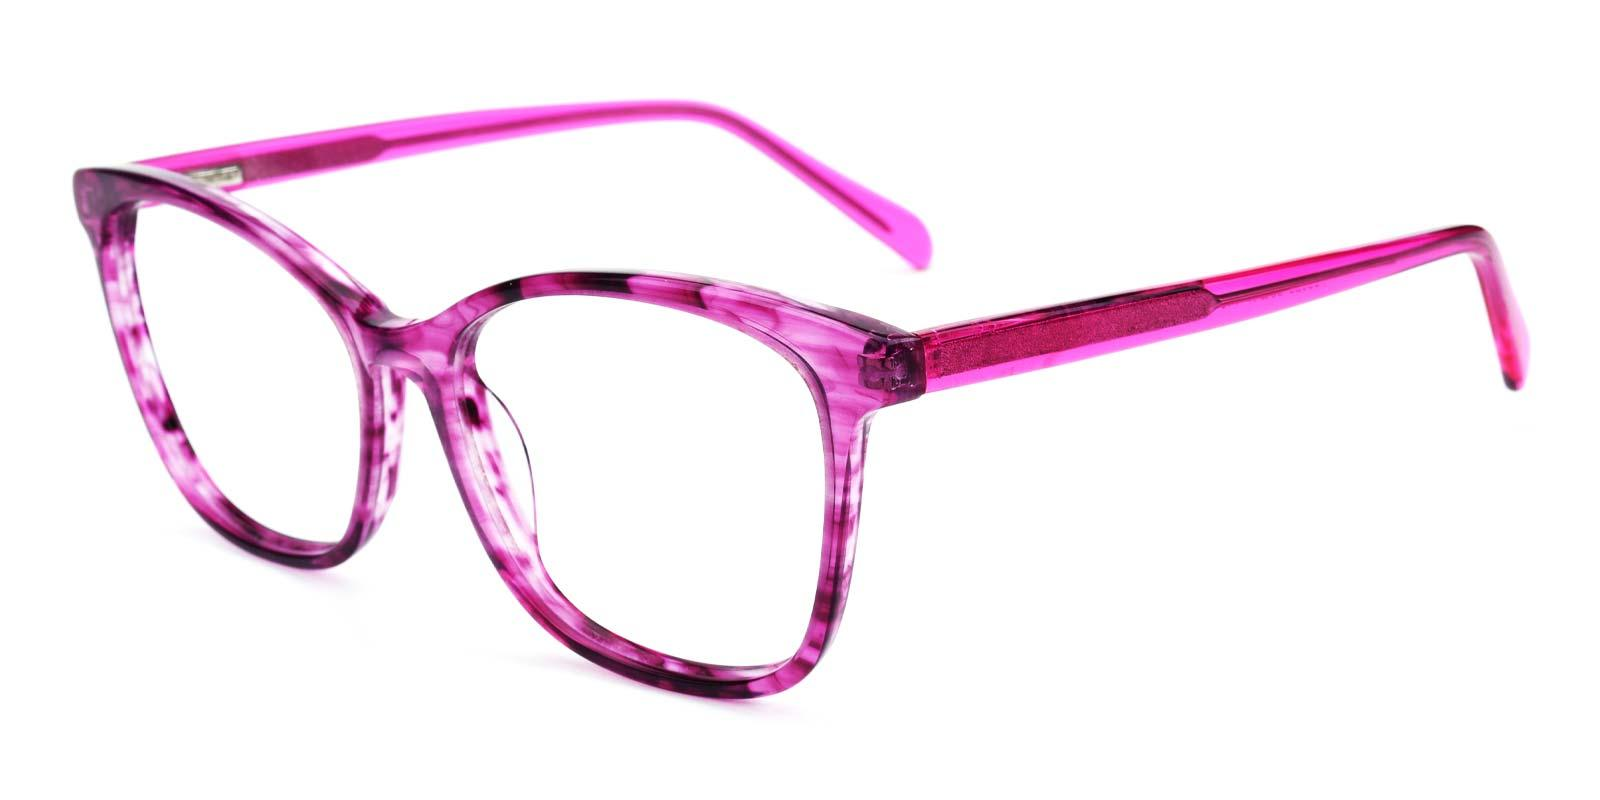 Poppy-Pink-Square-Acetate-Eyeglasses-additional1